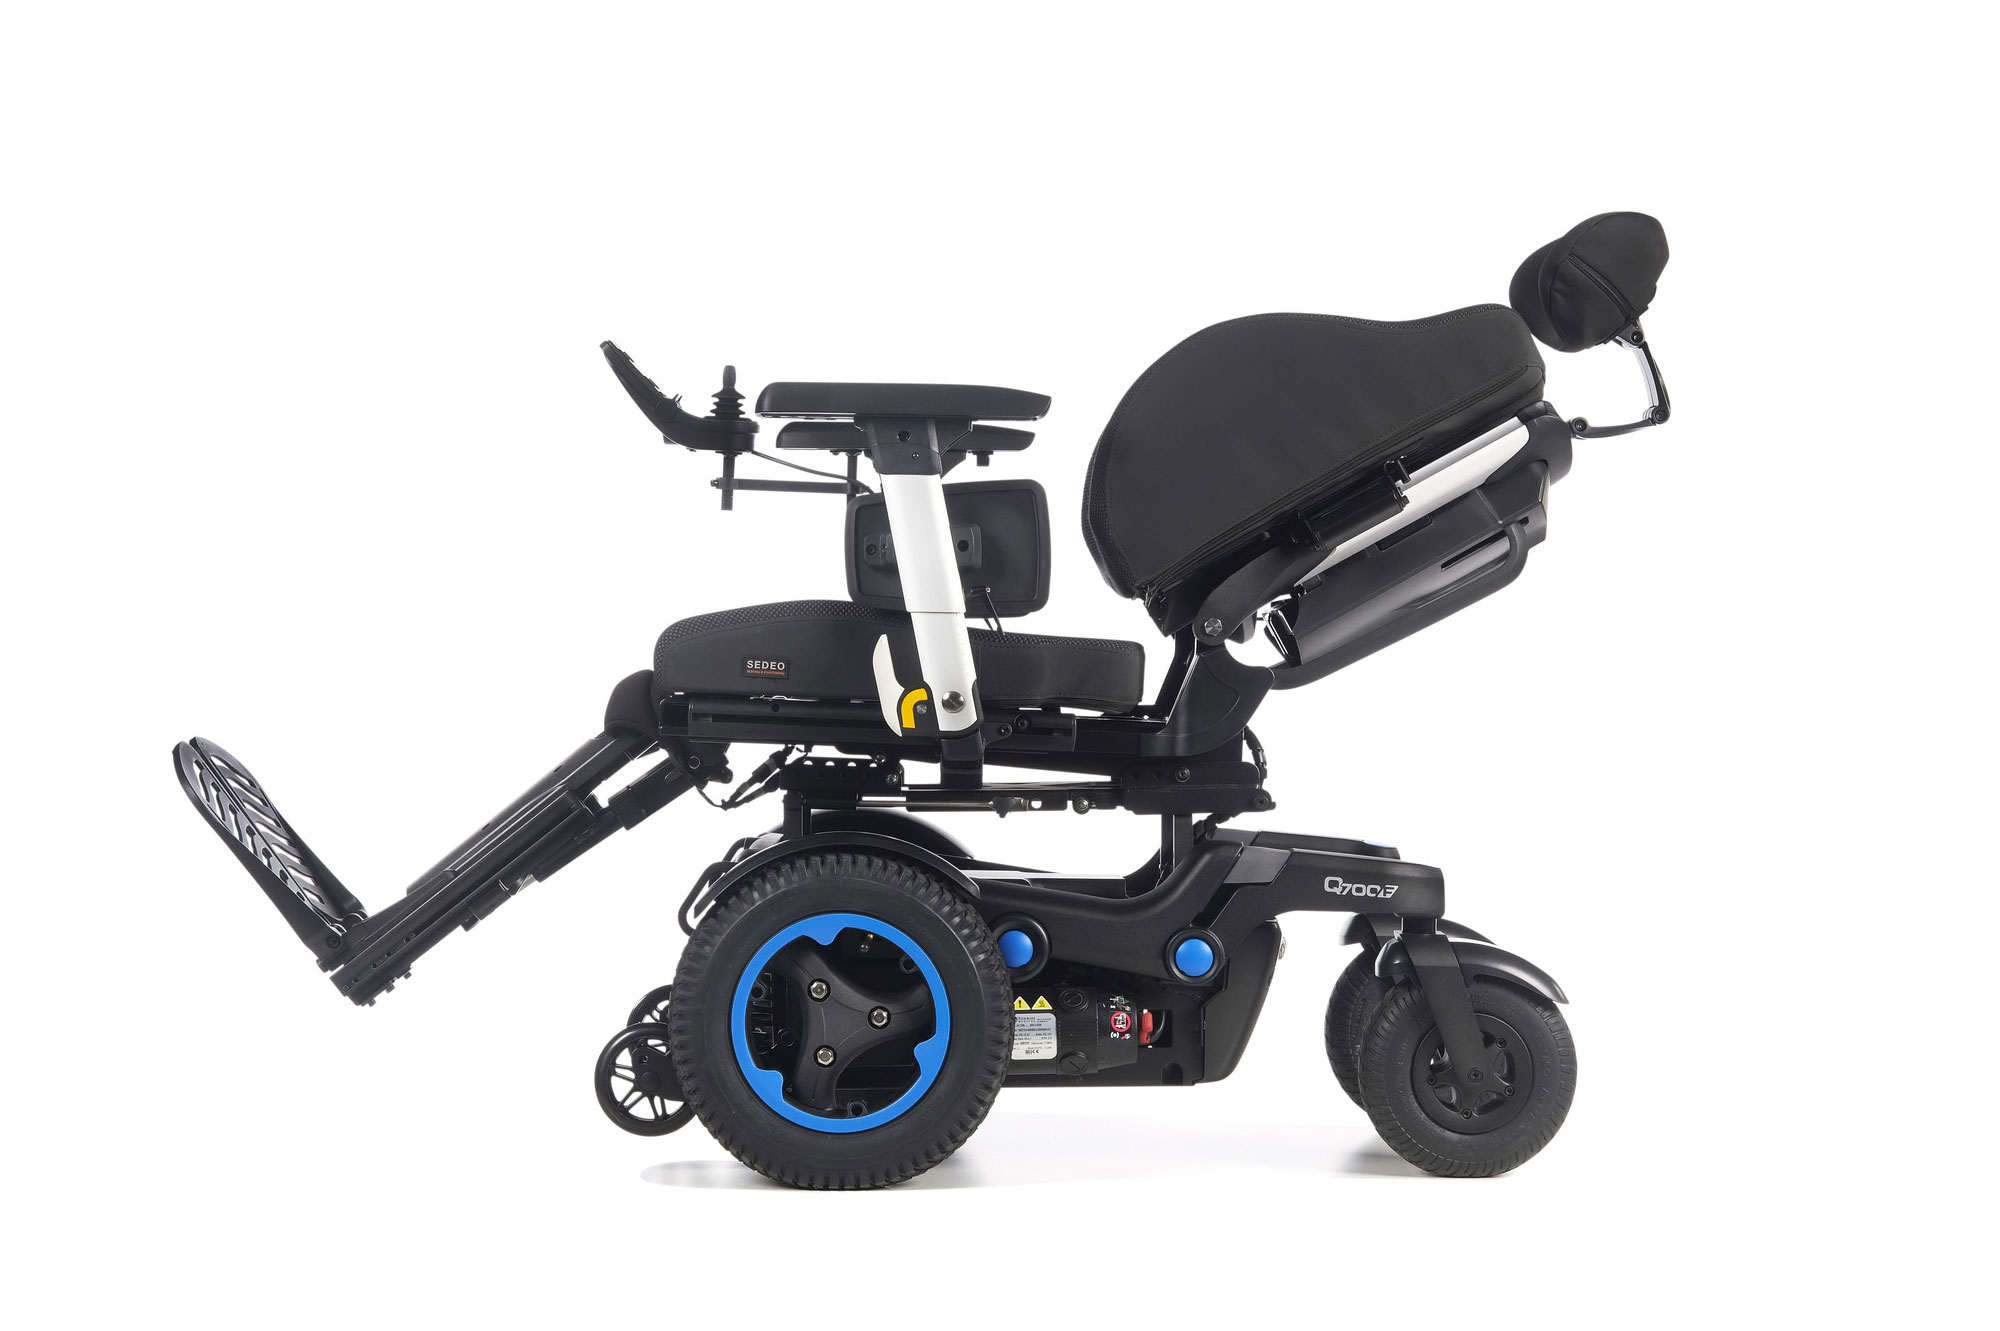 Quickie Q700 F SEDEO PRO Front-Wheel Powered Wheelchair